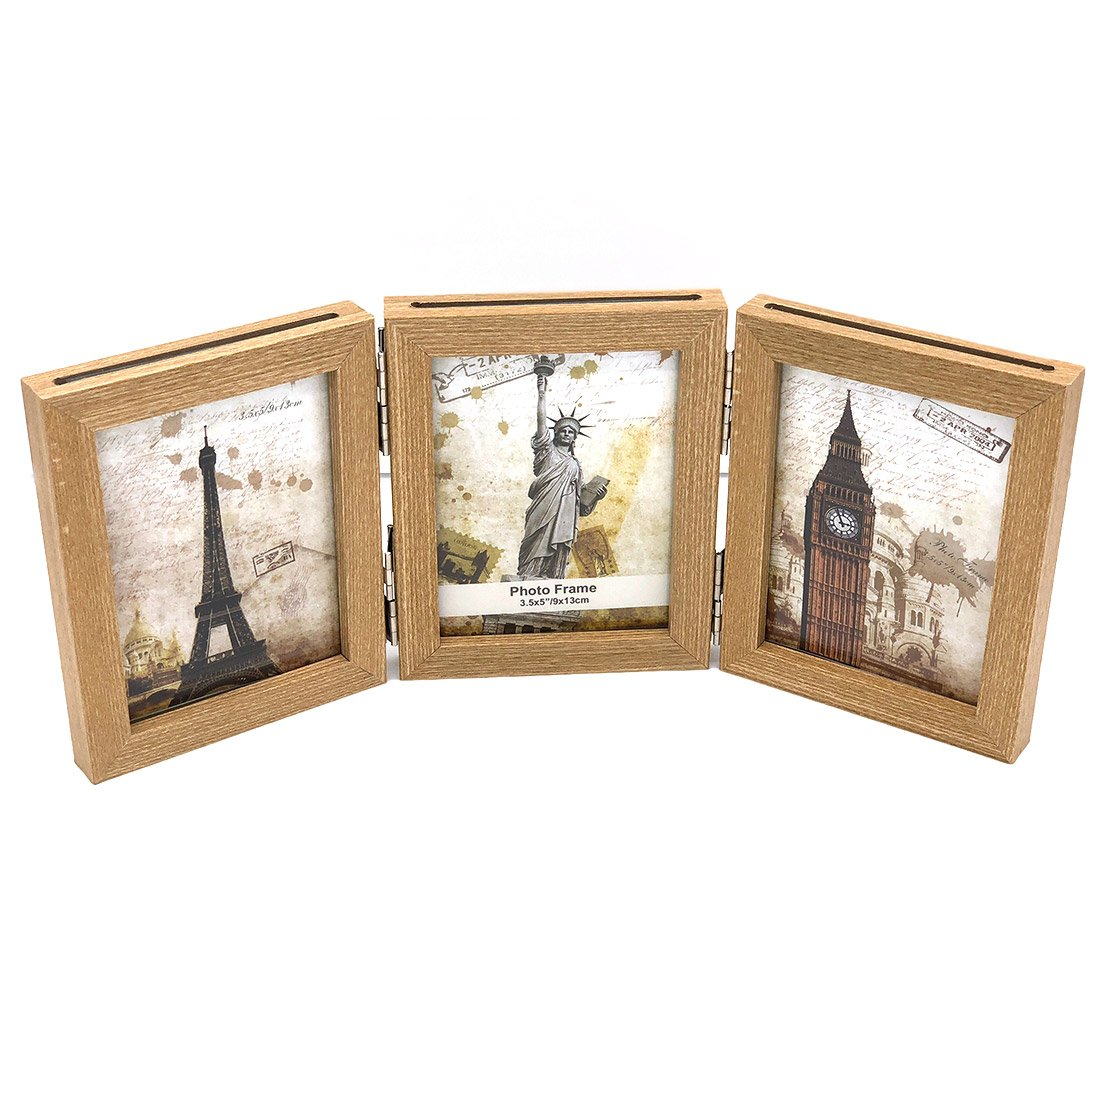 INEYMALL Wooden Photo Frame Folding 3 Stage Photo Frame With Glass 3.5x5 (beige)